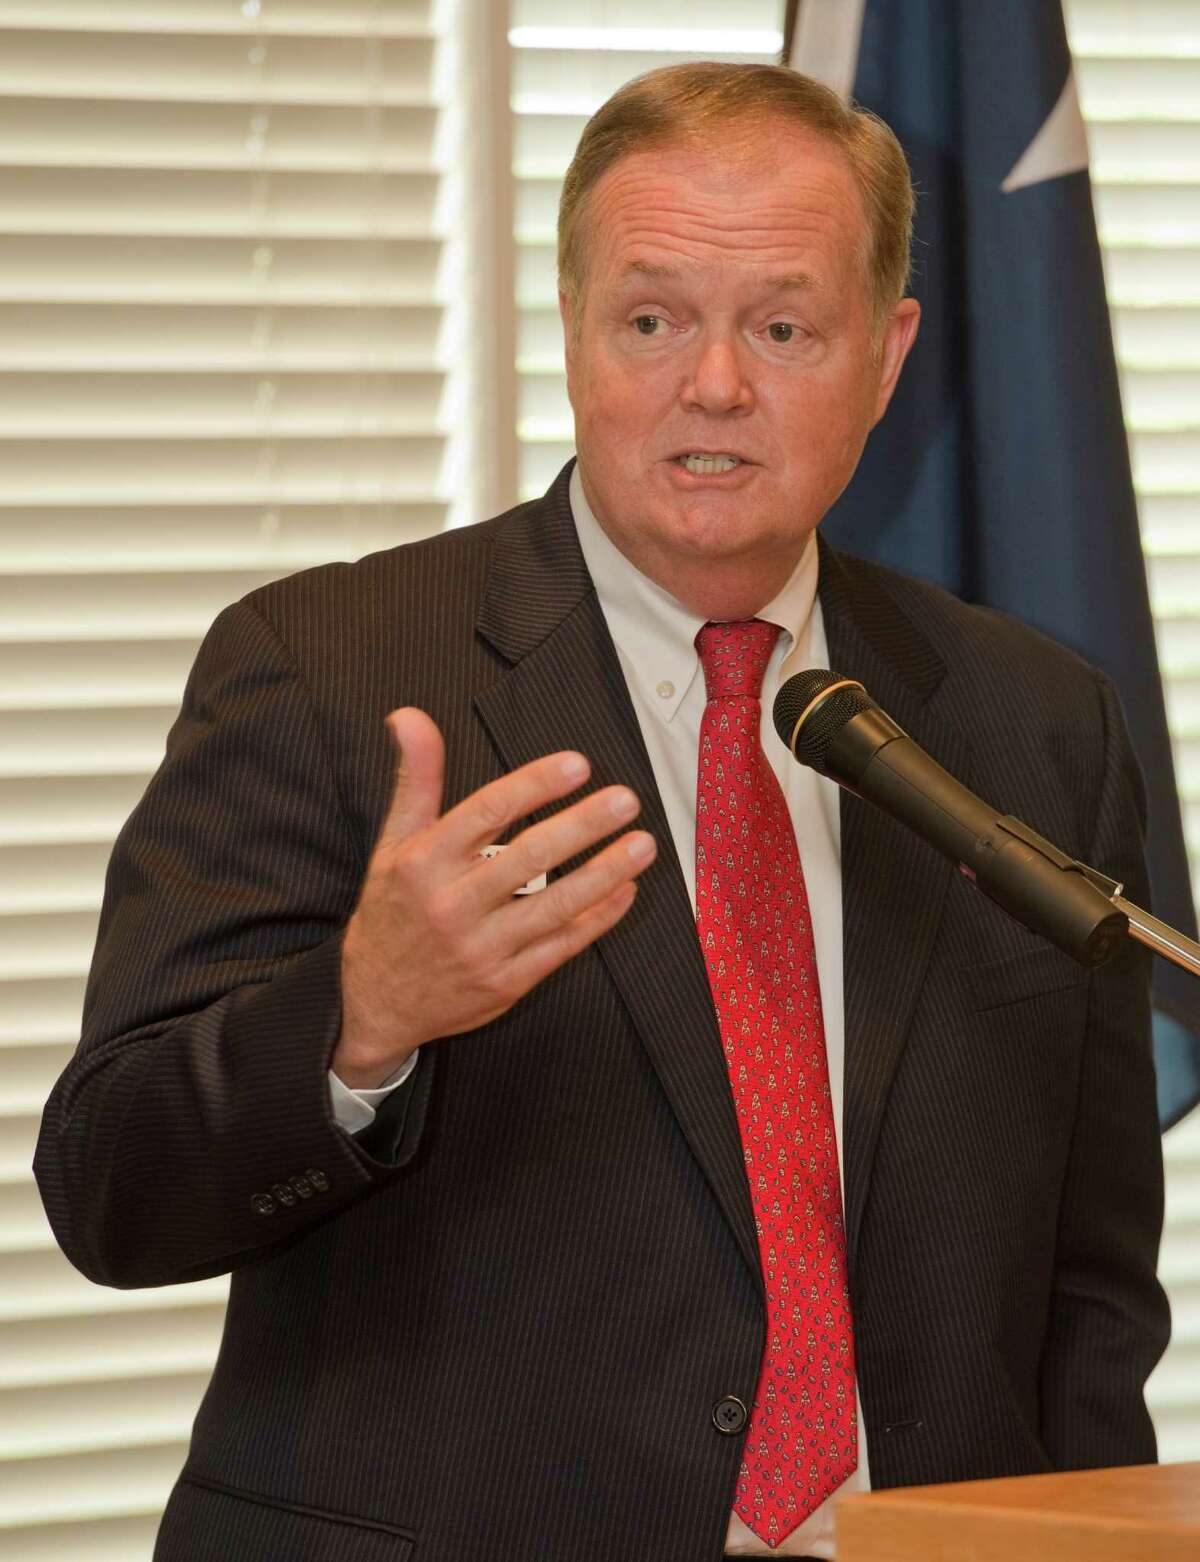 Wayne Christian, candidate for Texas Railroad Commission, speaks Wednesday 04-13-16 at the Midland County Republican Women's luncheon. Tim Fischer\Reporter-Telegram